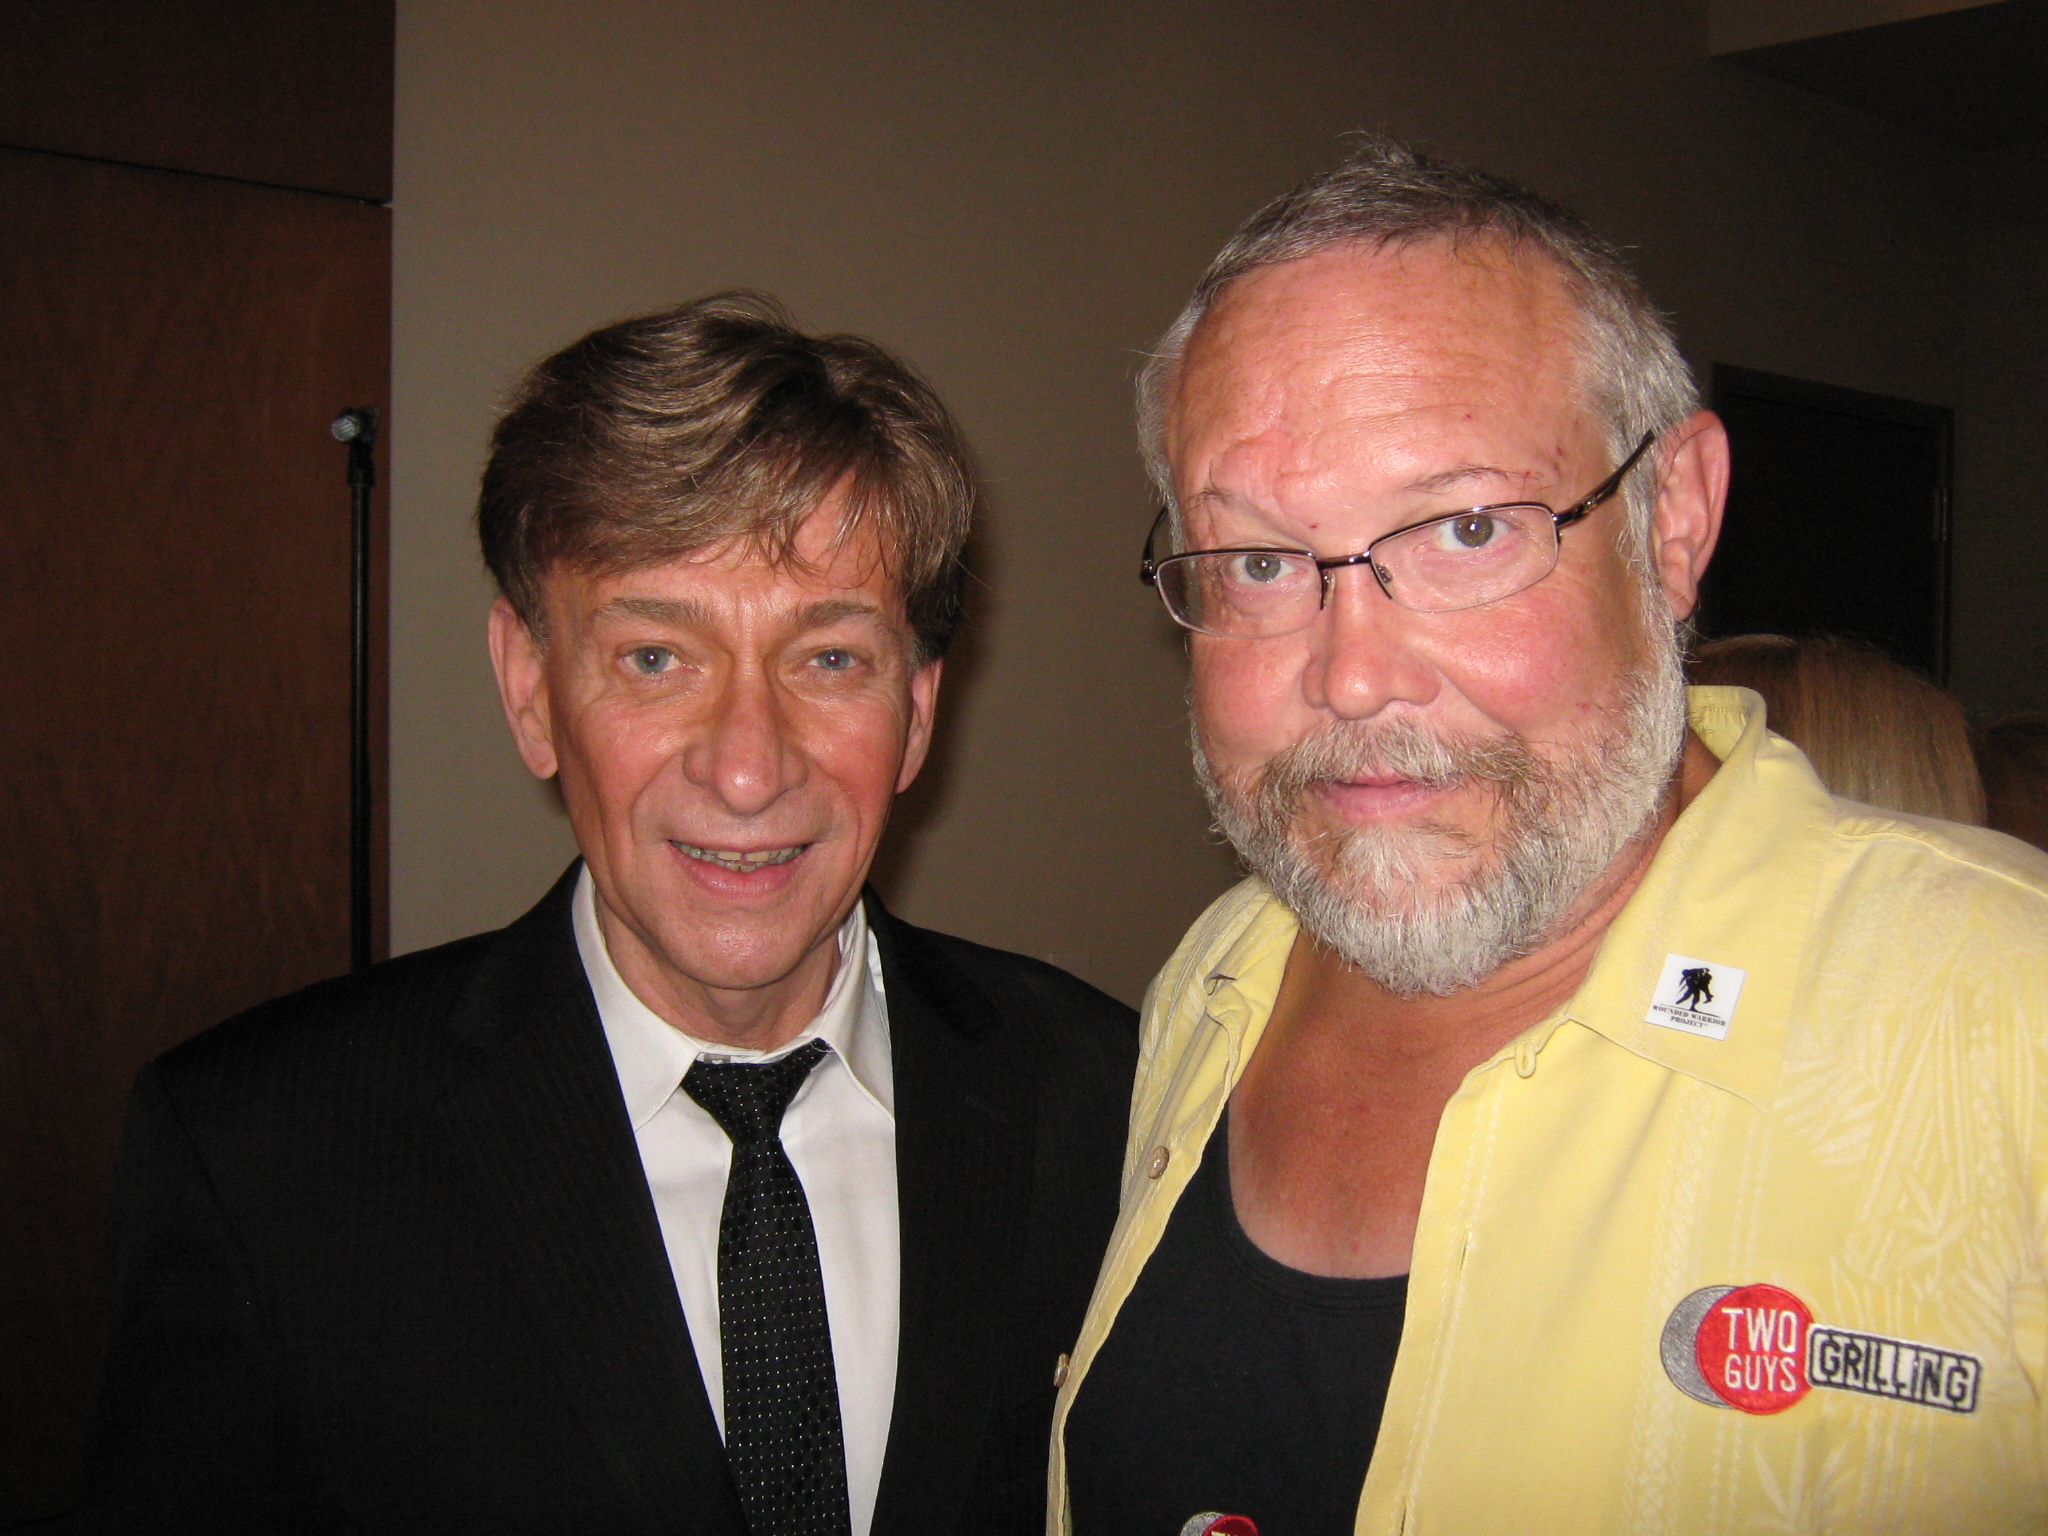 Breakfast with Gary & Kelly - Musical Guest Bobby Caldwell